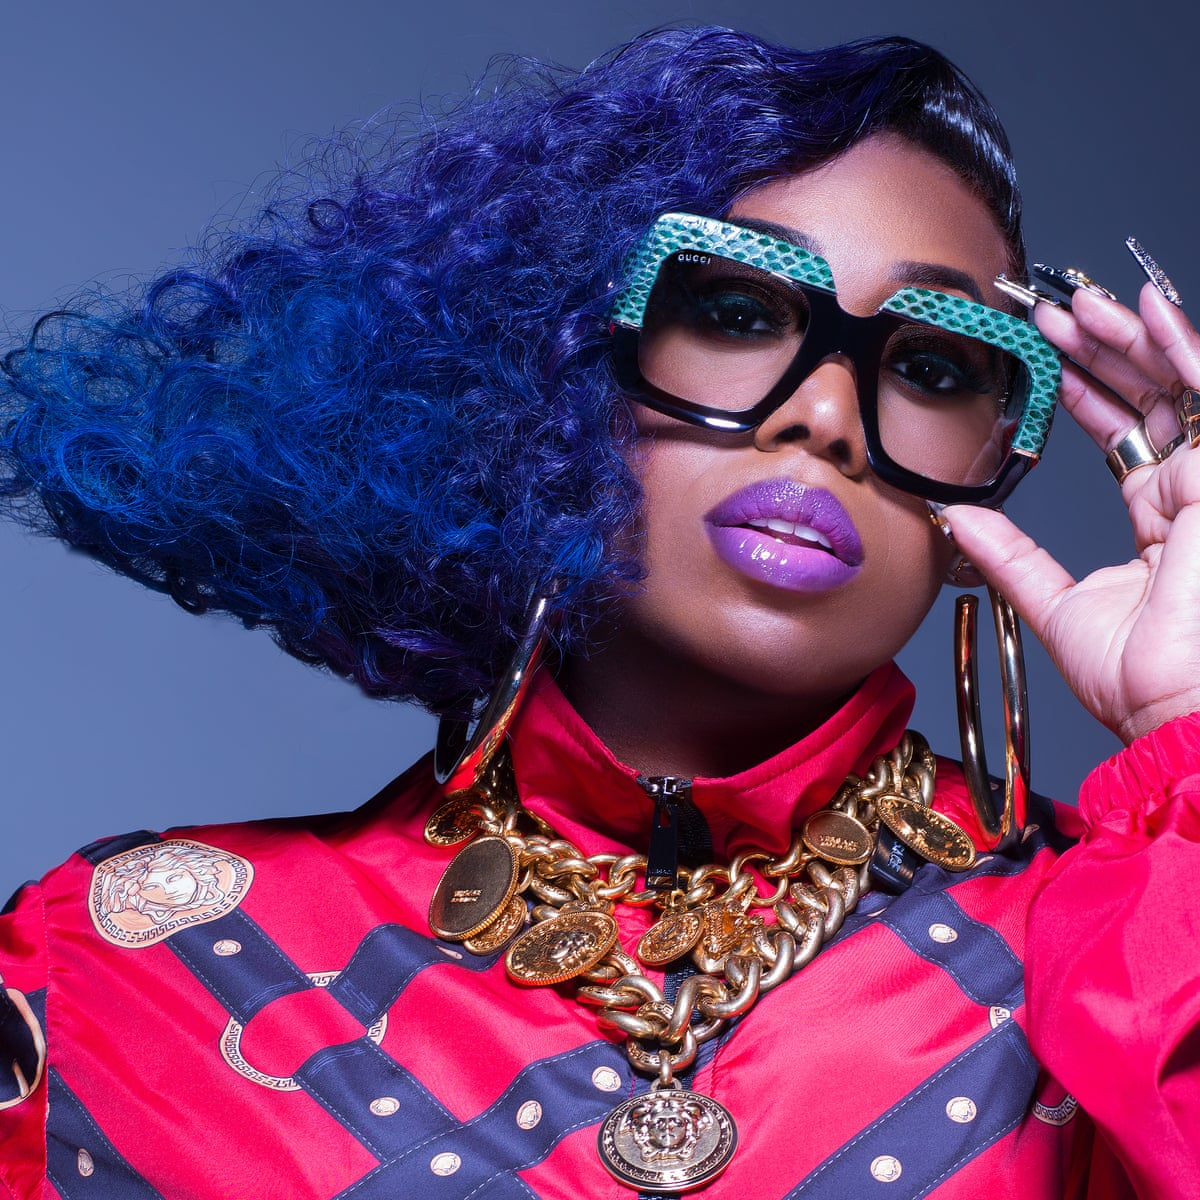 Missy Elliott Beyonce Said If I Sound Crazy Don T Put This Out Music The Guardian